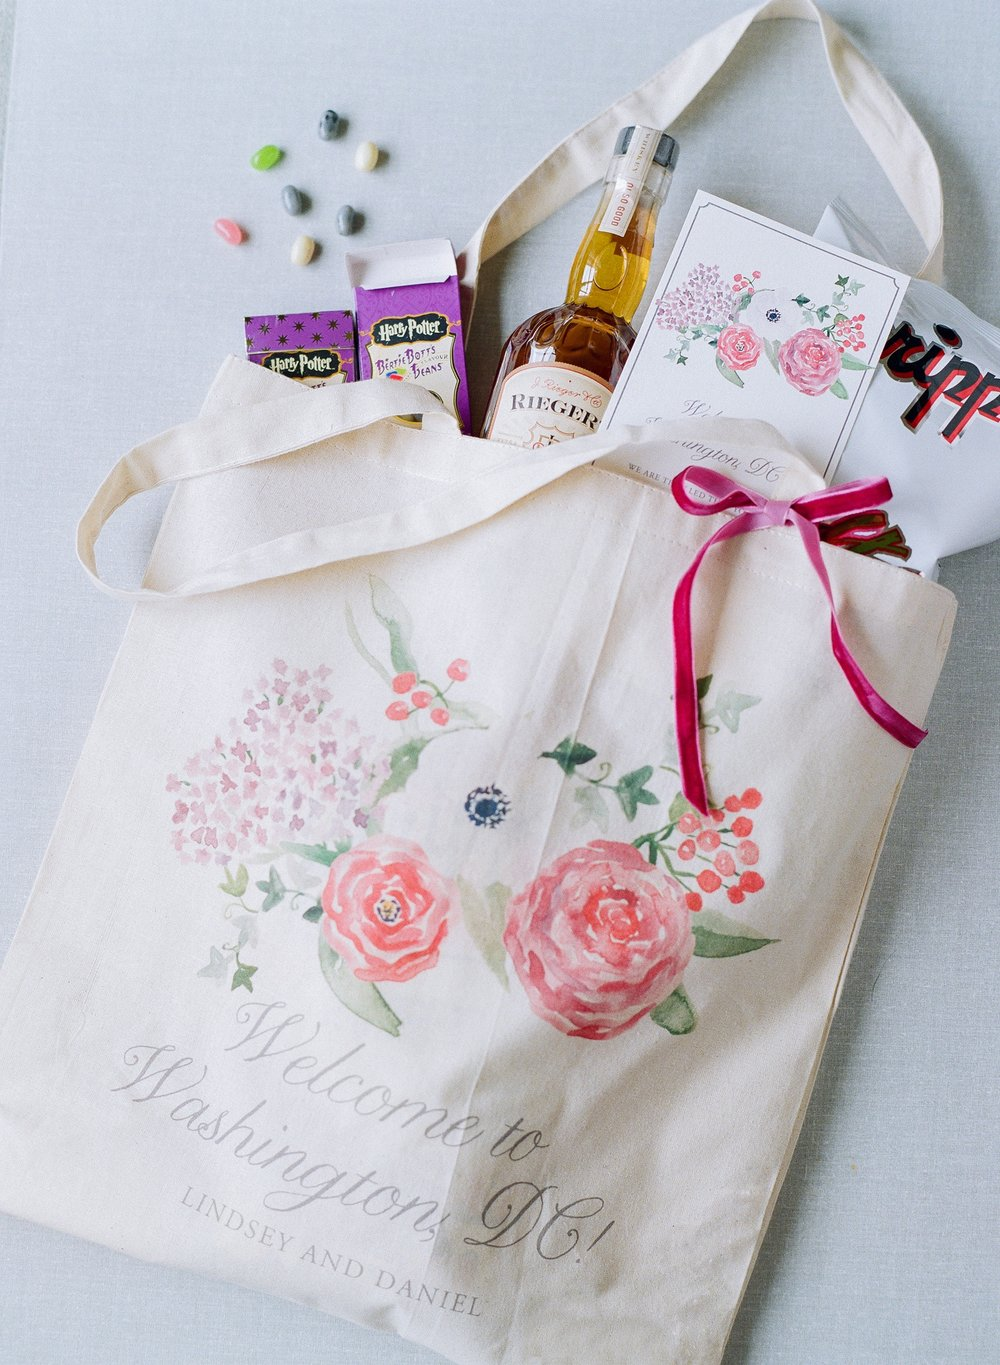 For the Love of Books Suite Welcome Bag